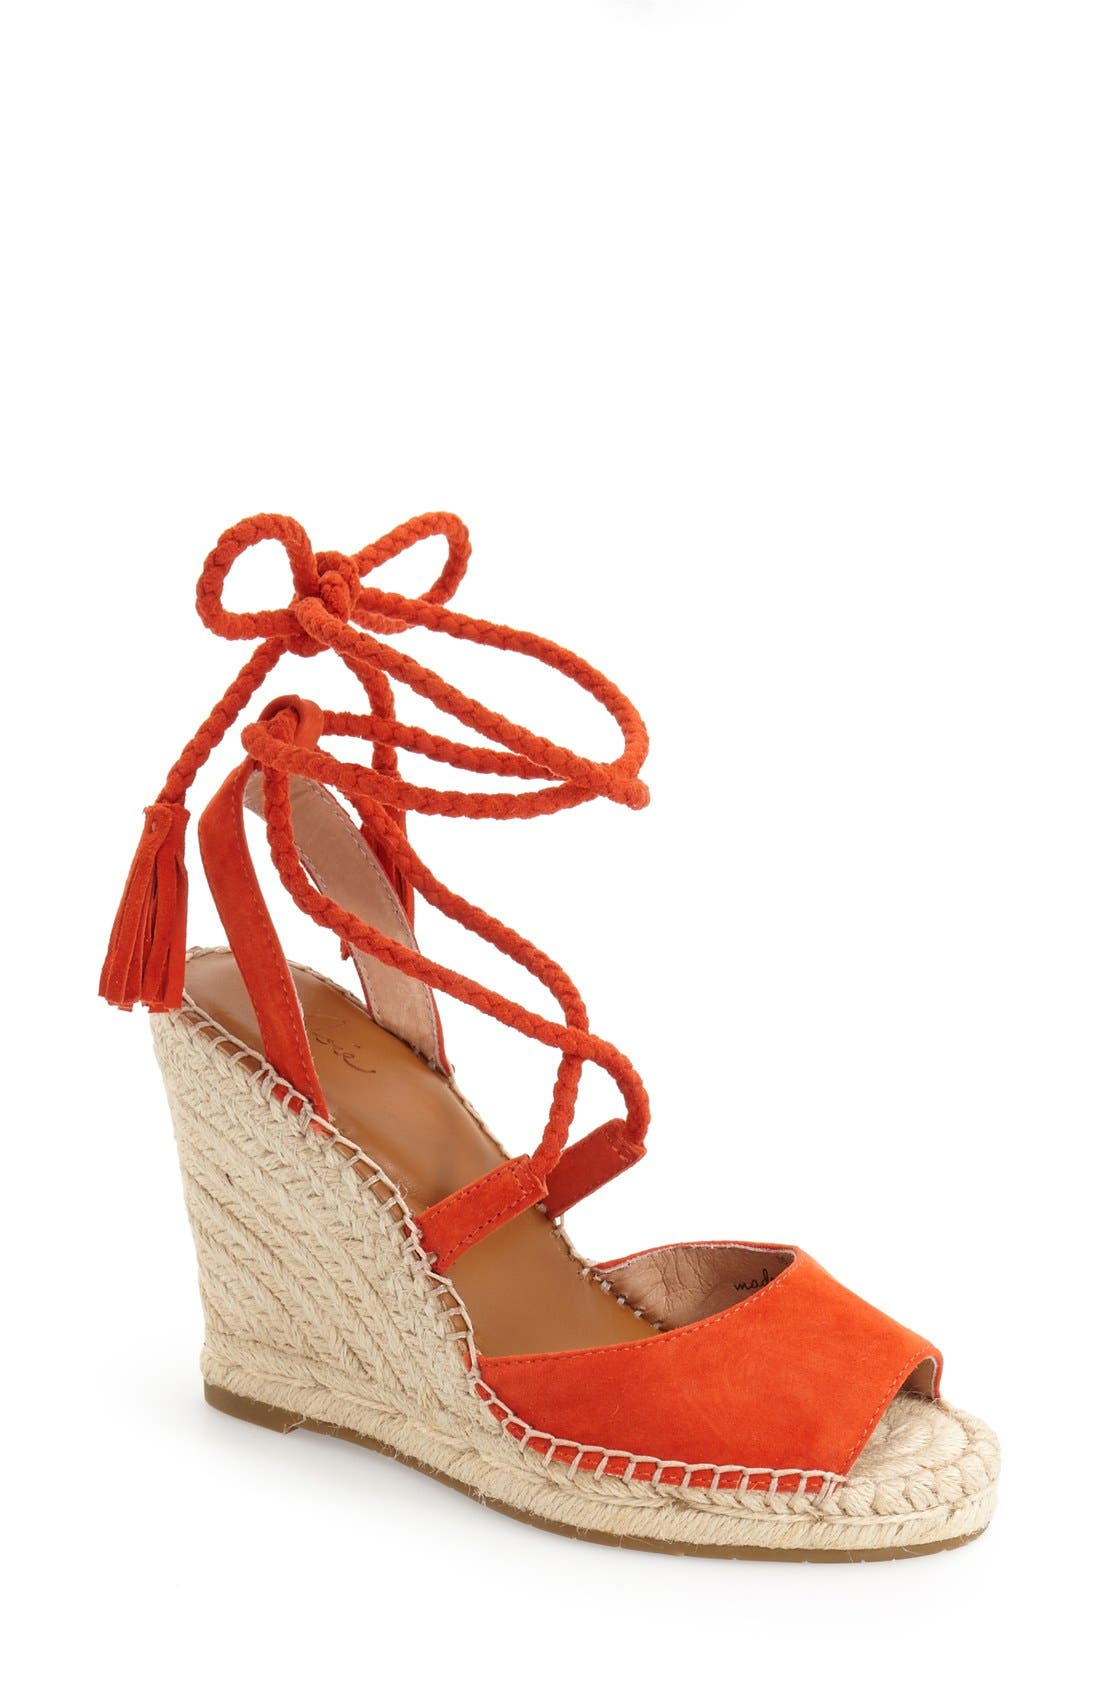 Main Image - Joie 'Phyllis' Espadrille Wedge (Women)